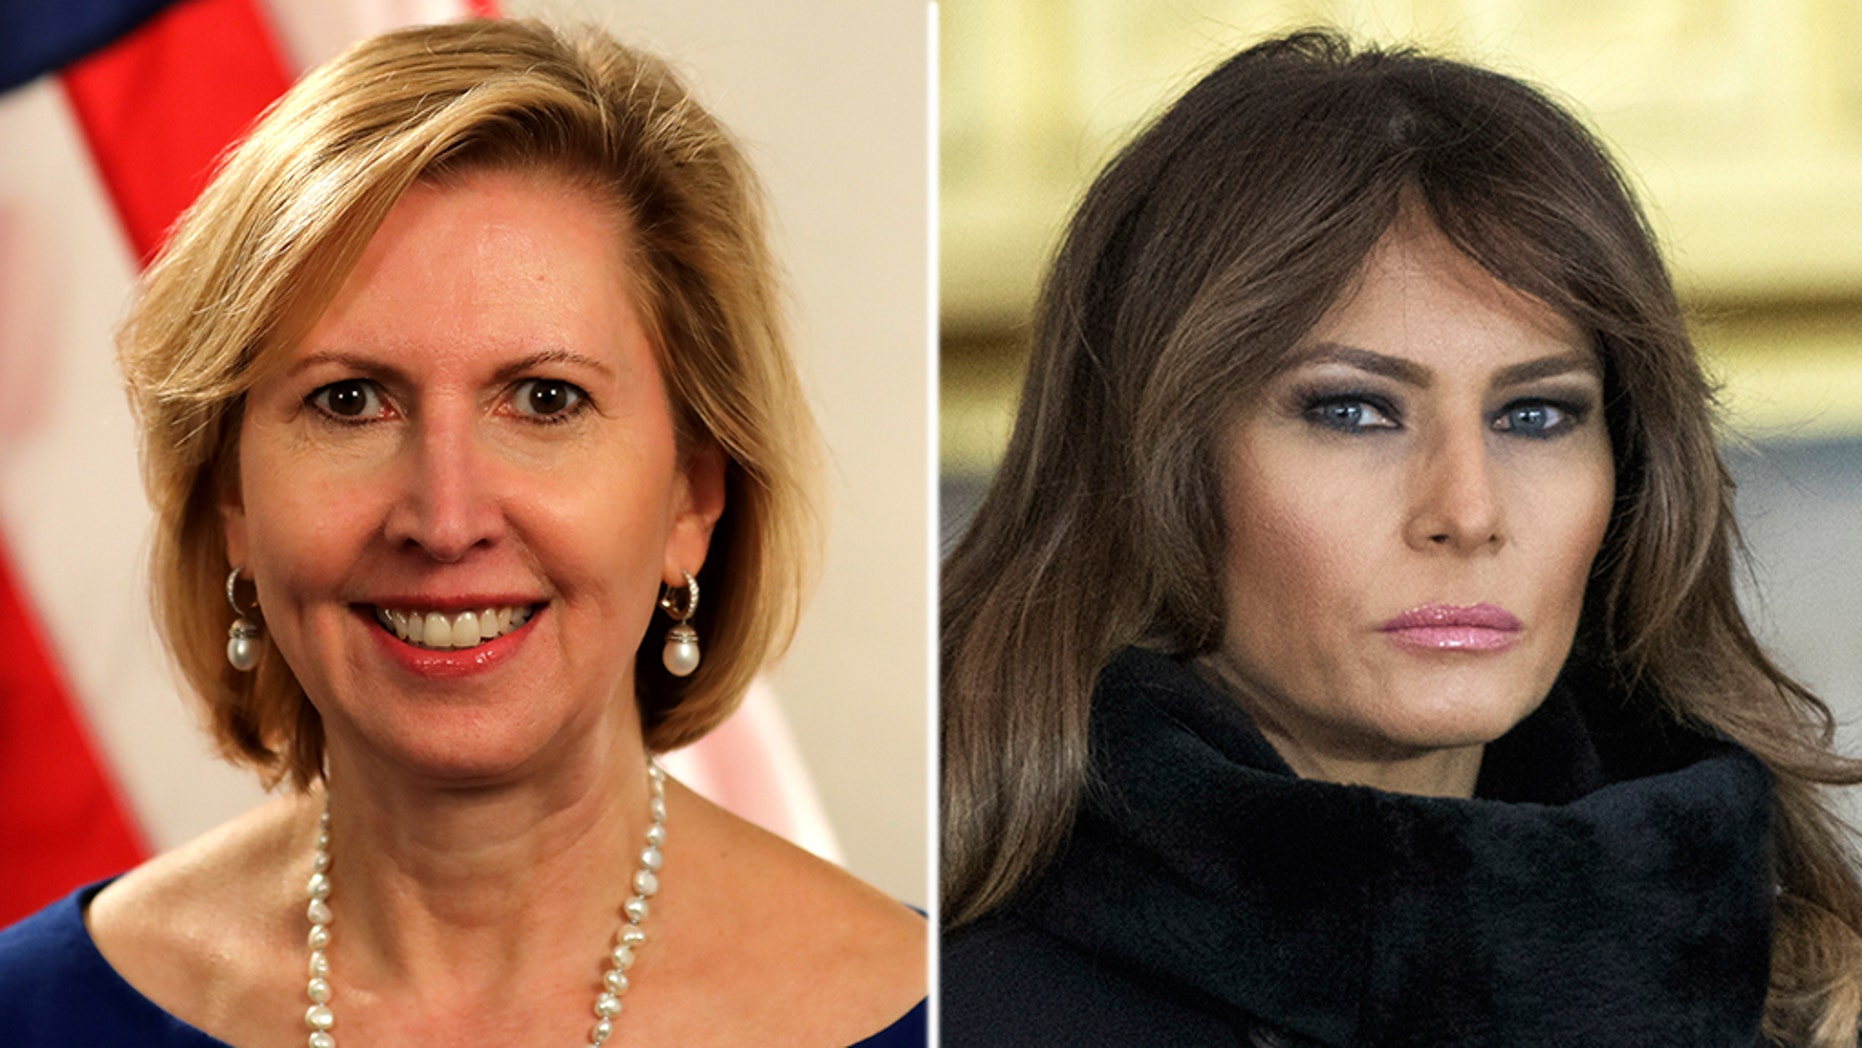 White House Adviser Mira Ricardel Forced Out After Row With Melania Trump